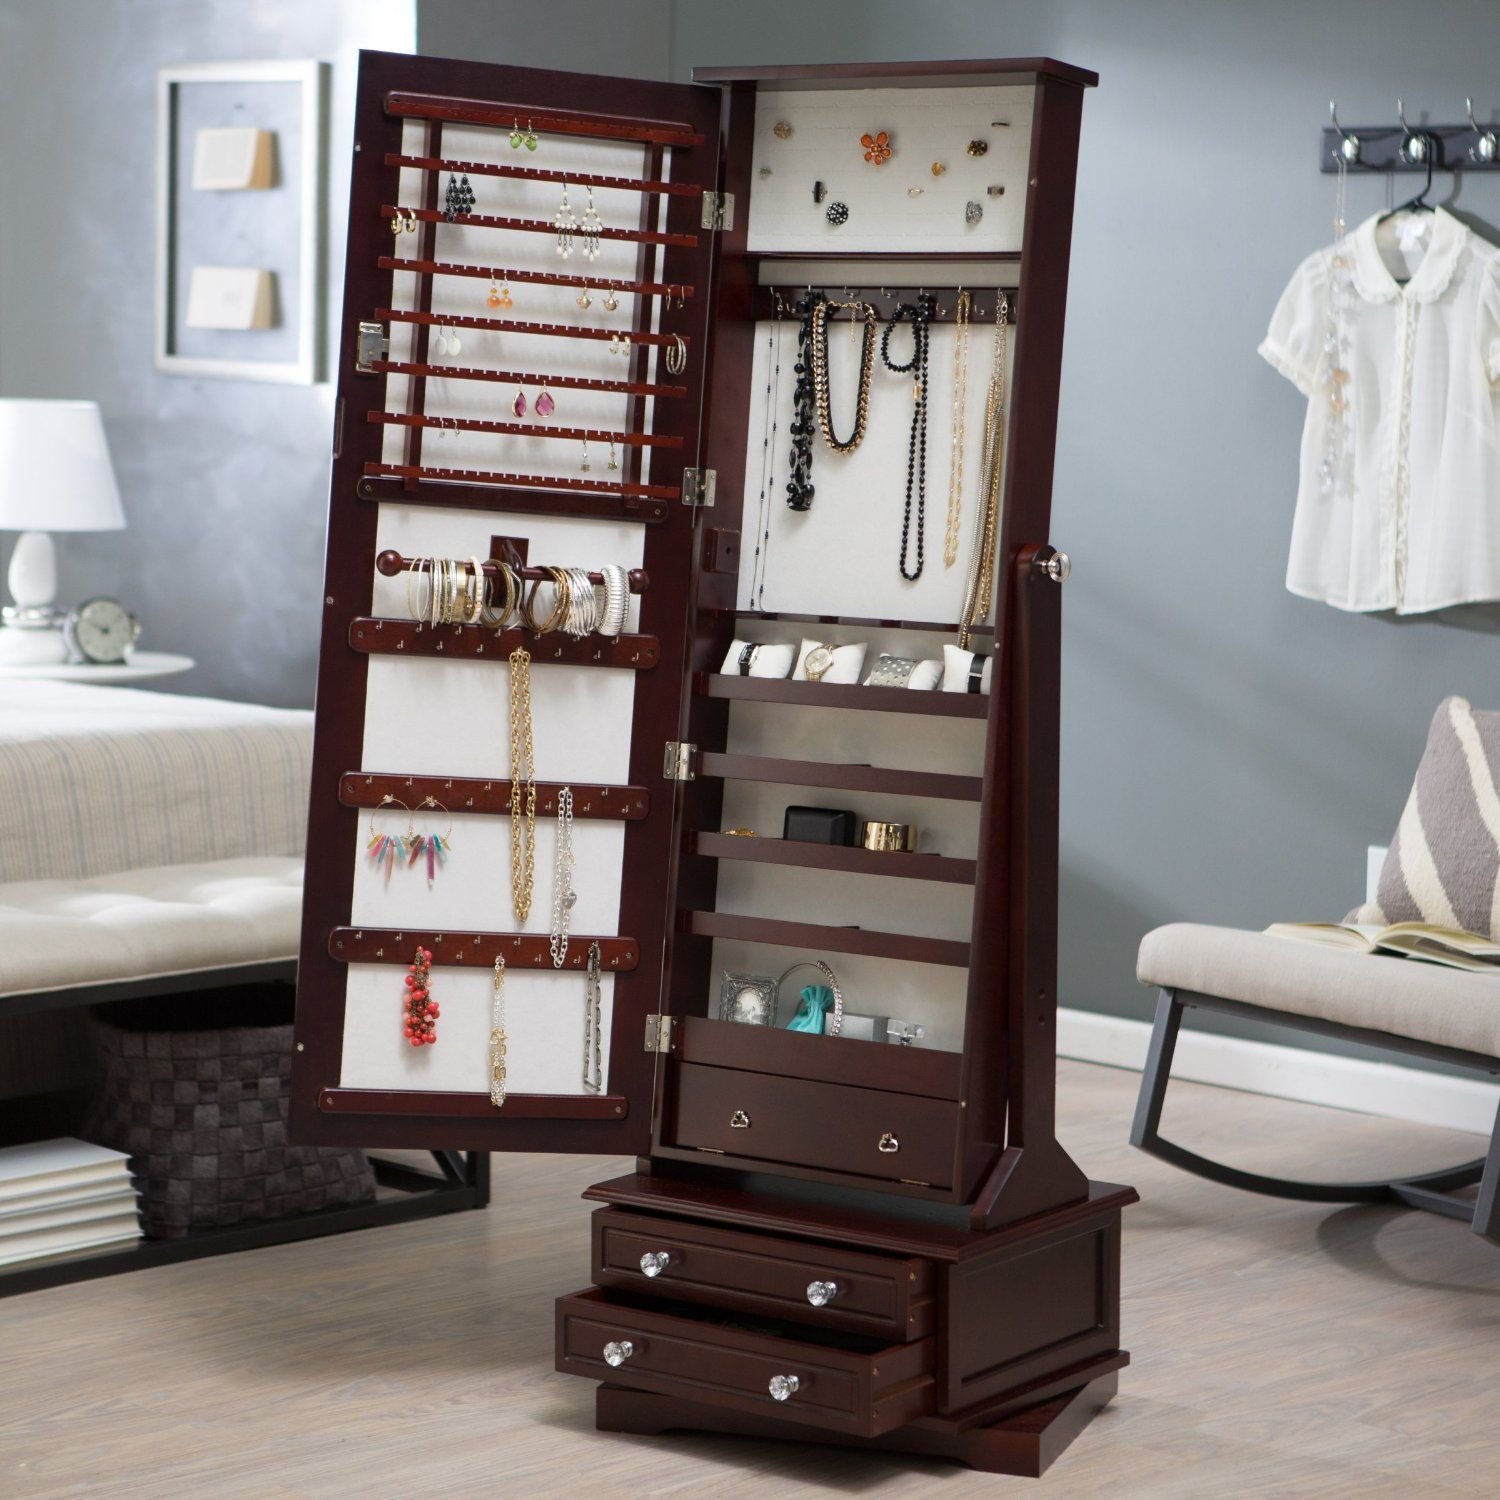 Awesome Mirrored Armoire For Bedroom Furniture Ideas Belham Living